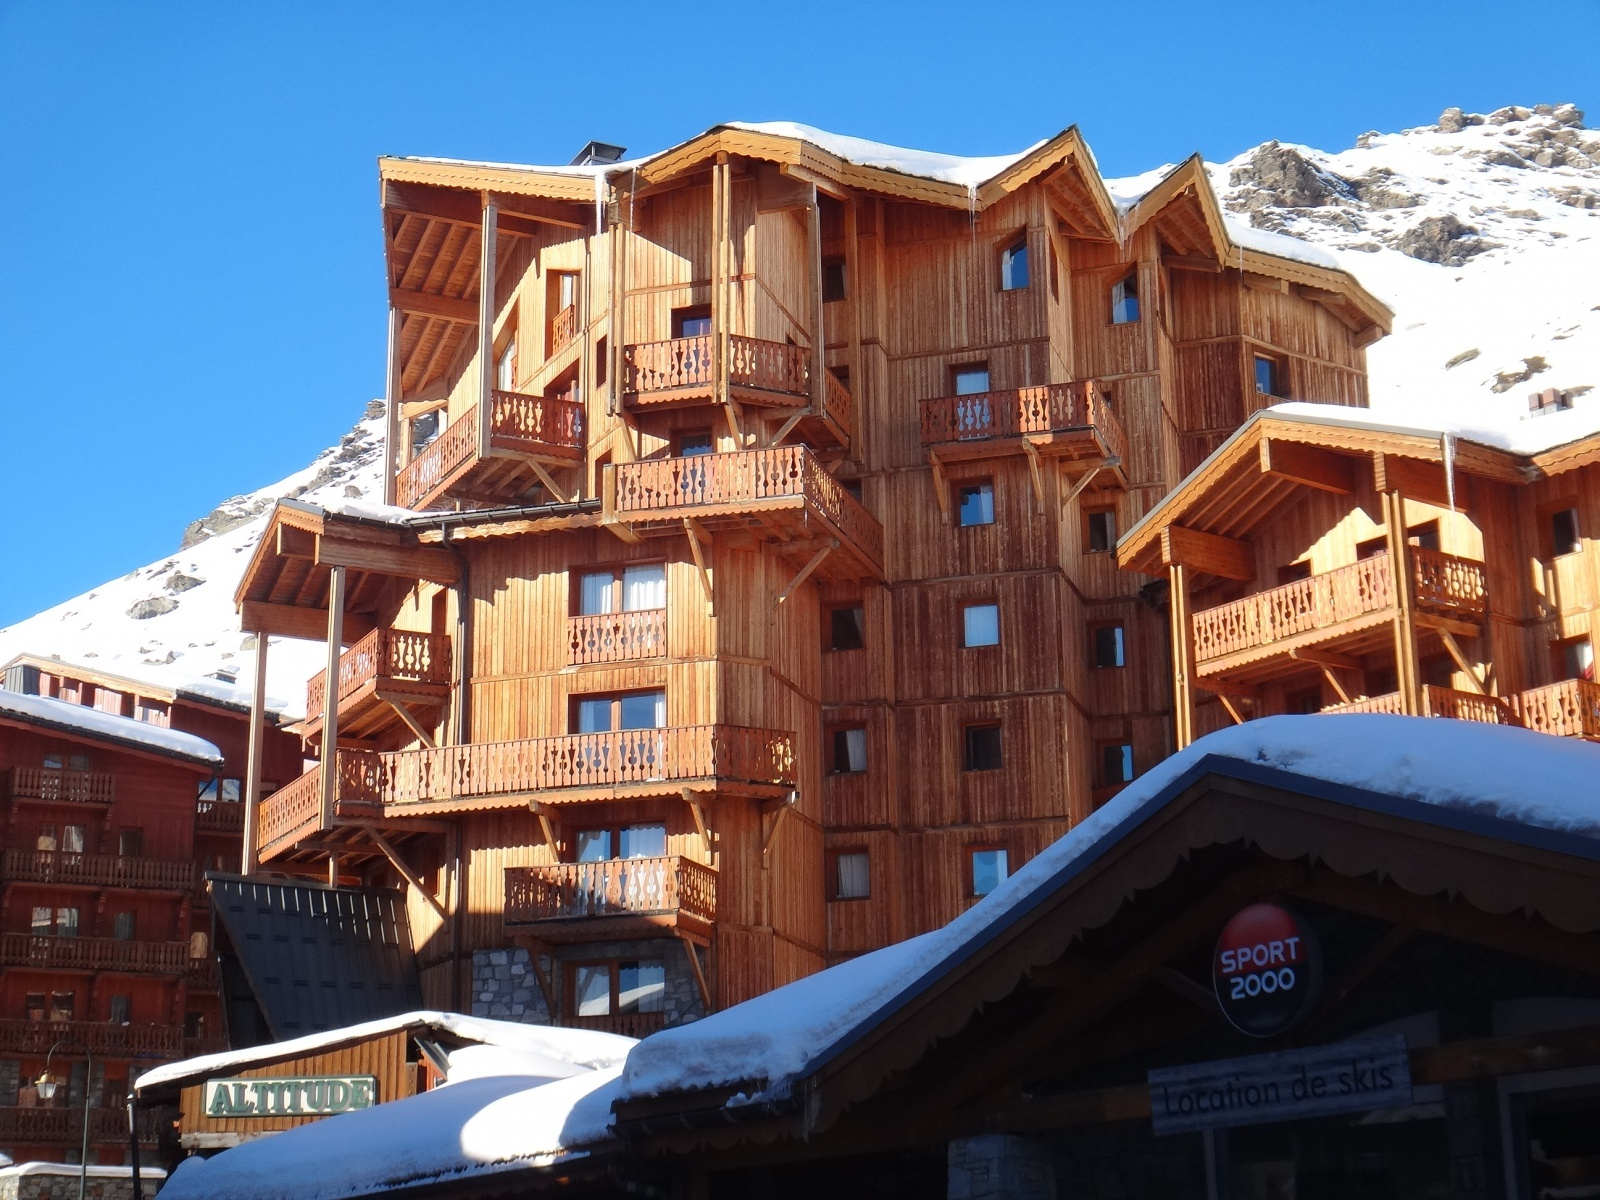 An image of the Chalet Altitude Val Thorens residence